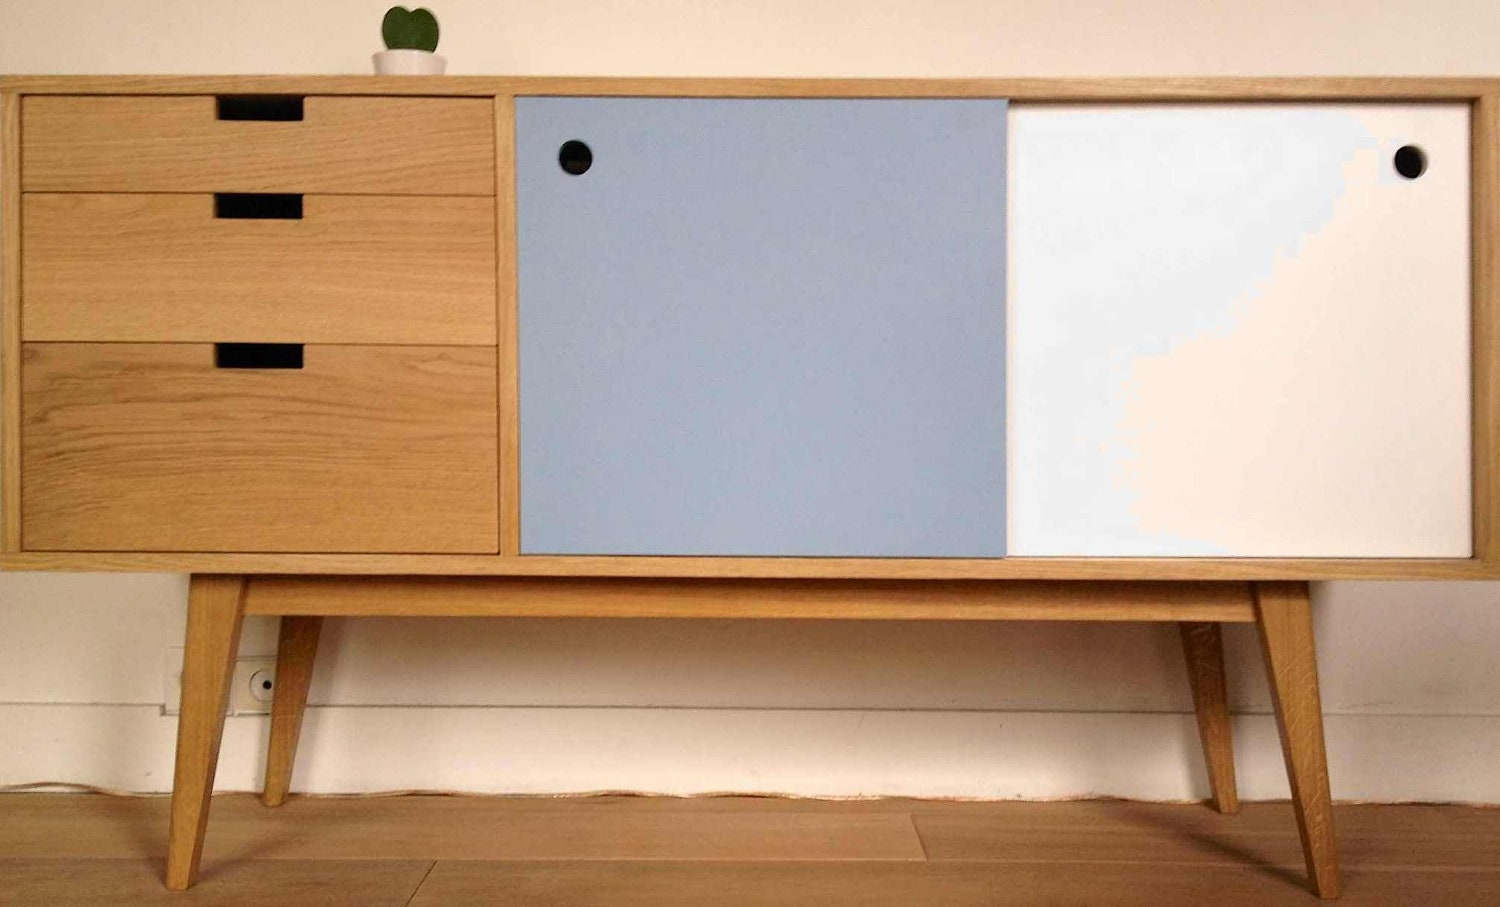 Meuble Tv Scandinave Ikea Fenrez Com Sammlung Von Design  # Ikea Meuble Tv Scandinave